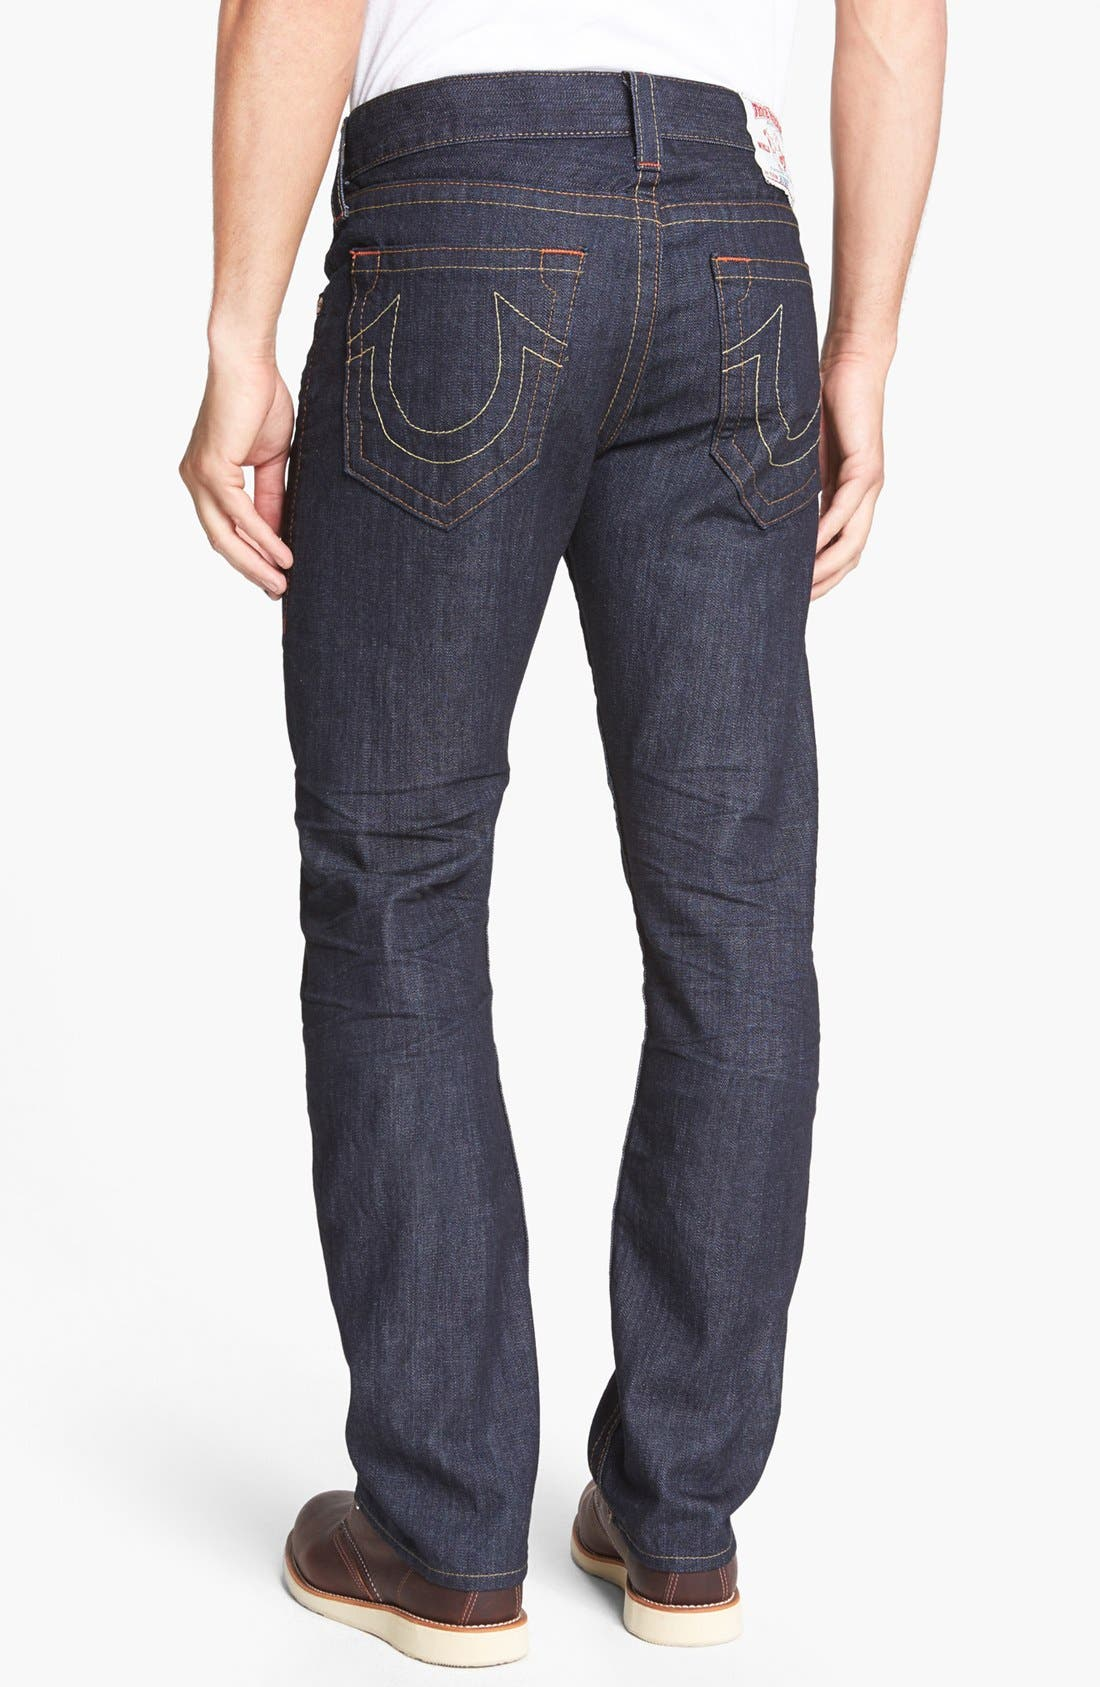 Alternate Image 1 Selected - True Religion Brand Jeans 'Bobby' Straight Leg Jeans (Bz Inglorious)